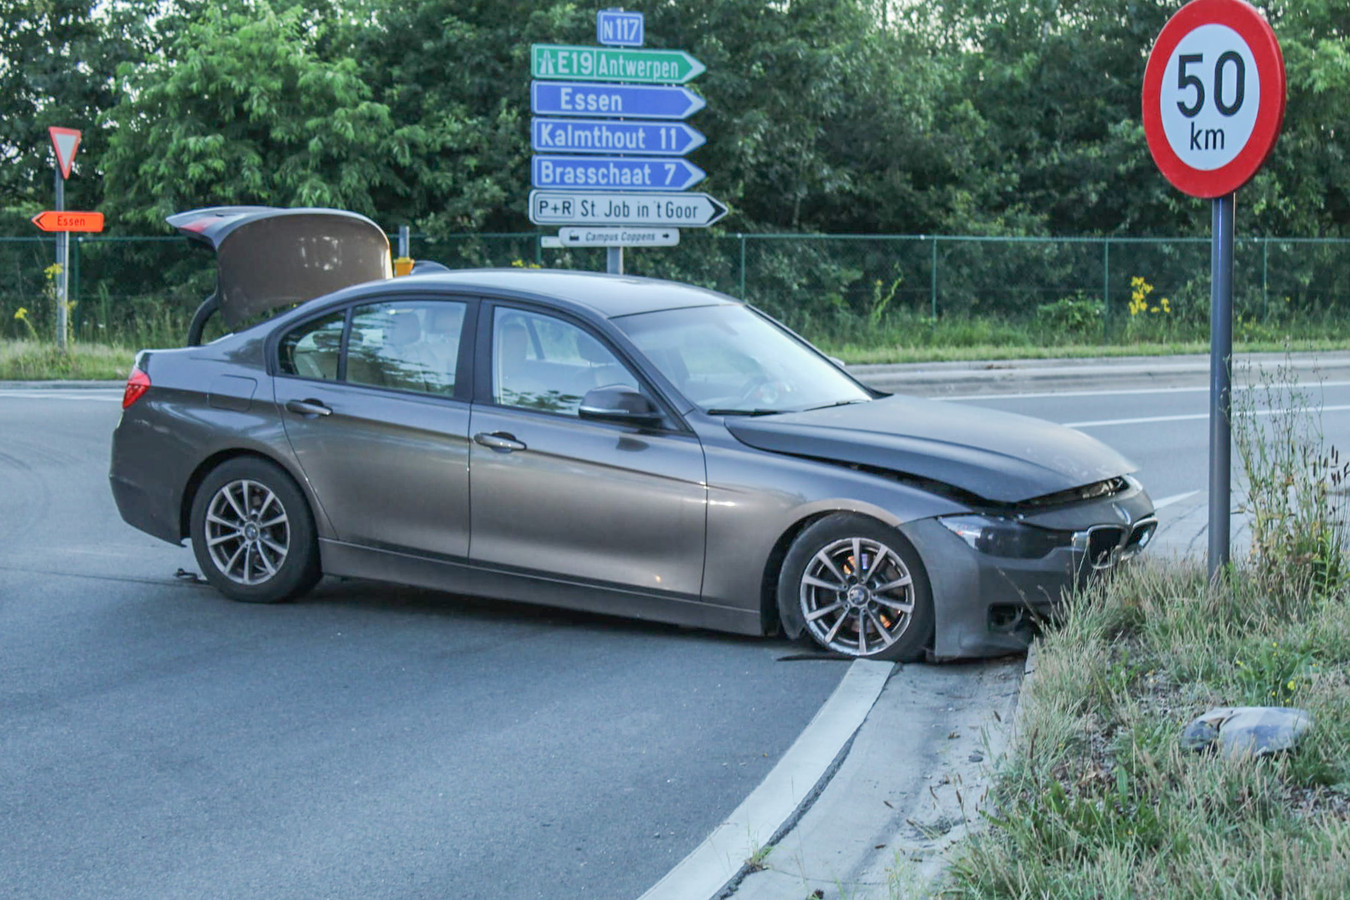 De BMW crashte net voorbij de afrit Sint-Job-in-'t-Goor.